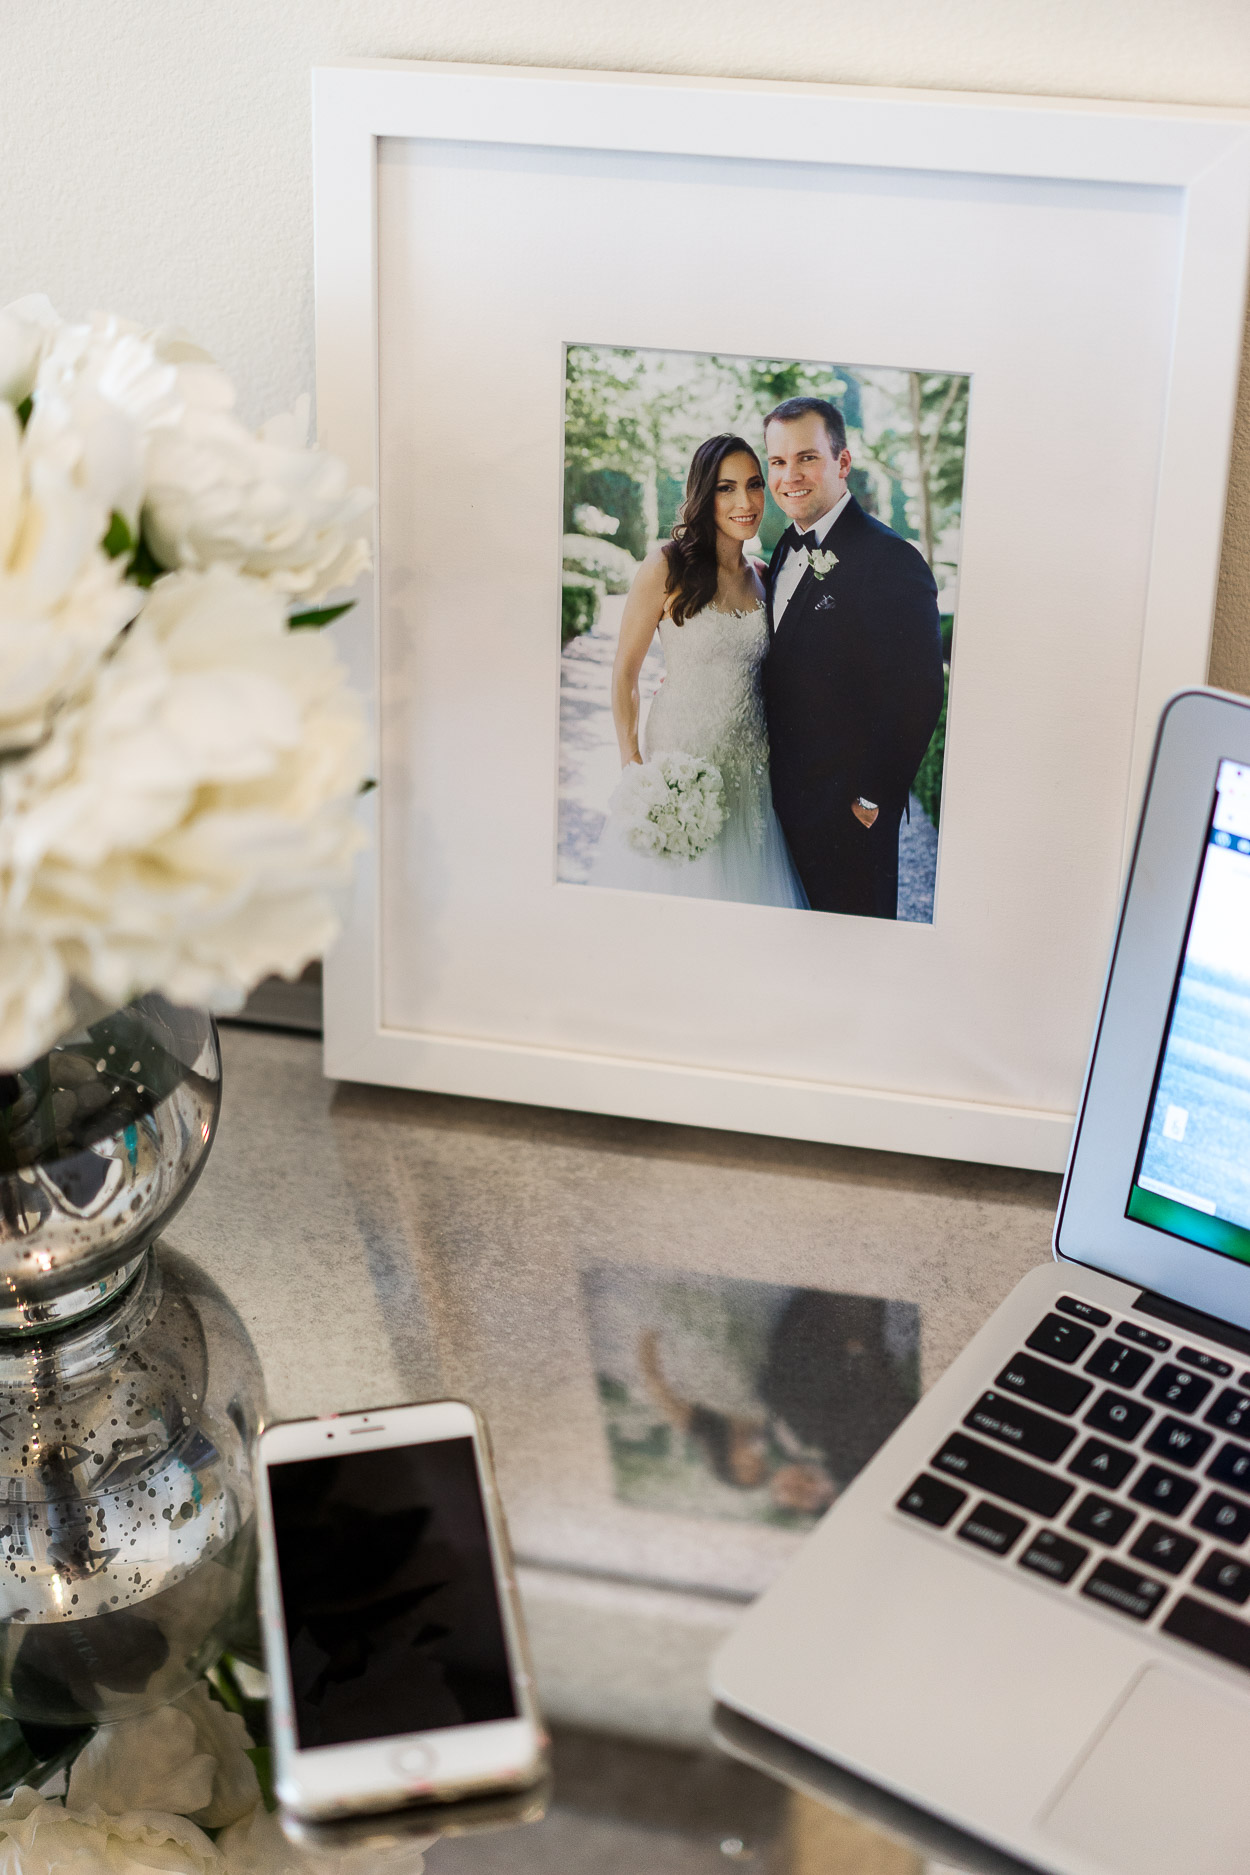 A Glam Lifestyle blogger styles the new Framebridge wedding collection at her home